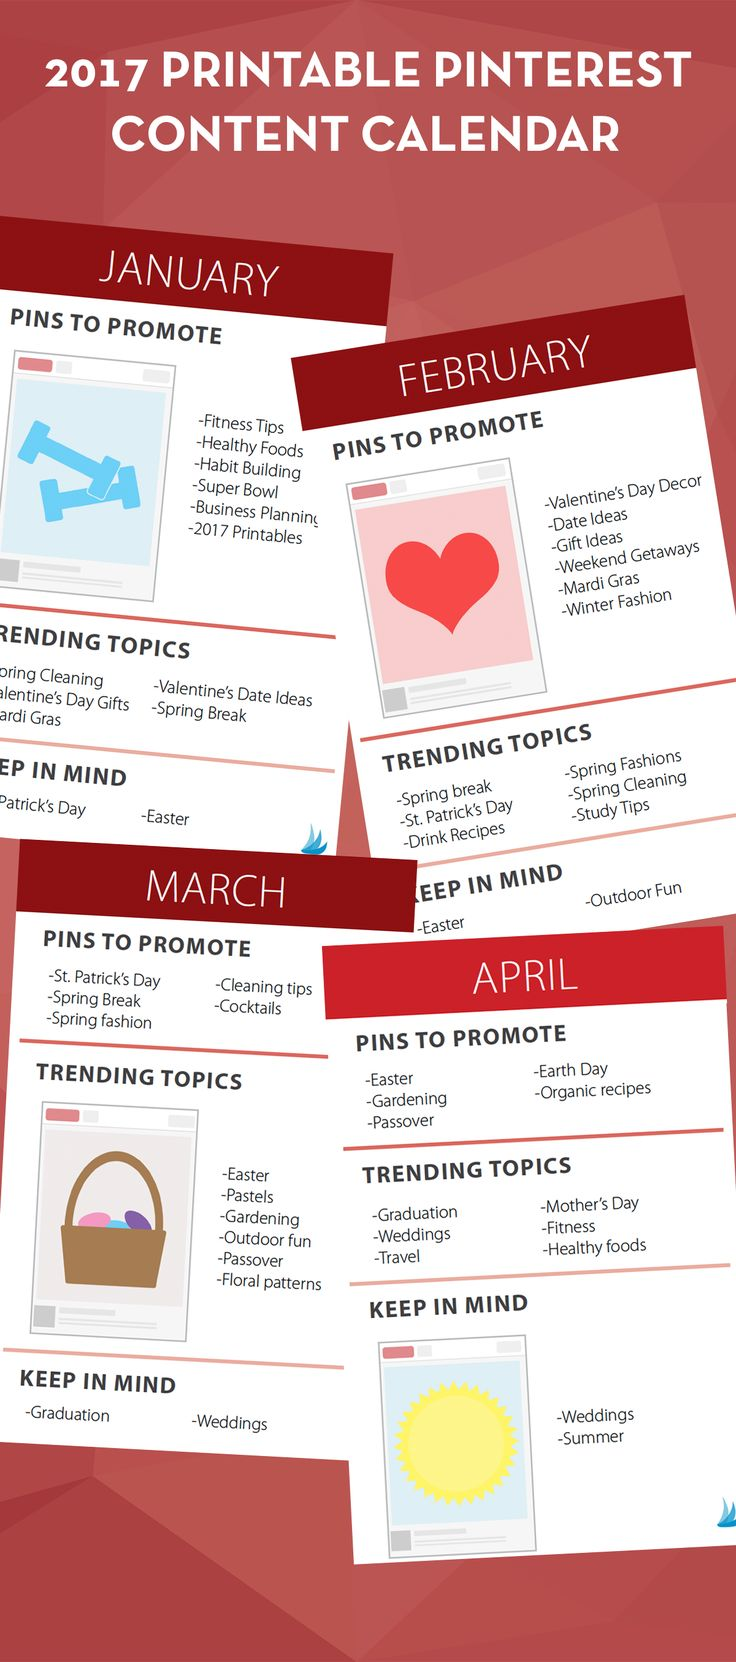 Know exactly what to Pin when with this FREE printable Pinterest content calendar from Tailwind.  Keep up with all the trends for every month of 2017.